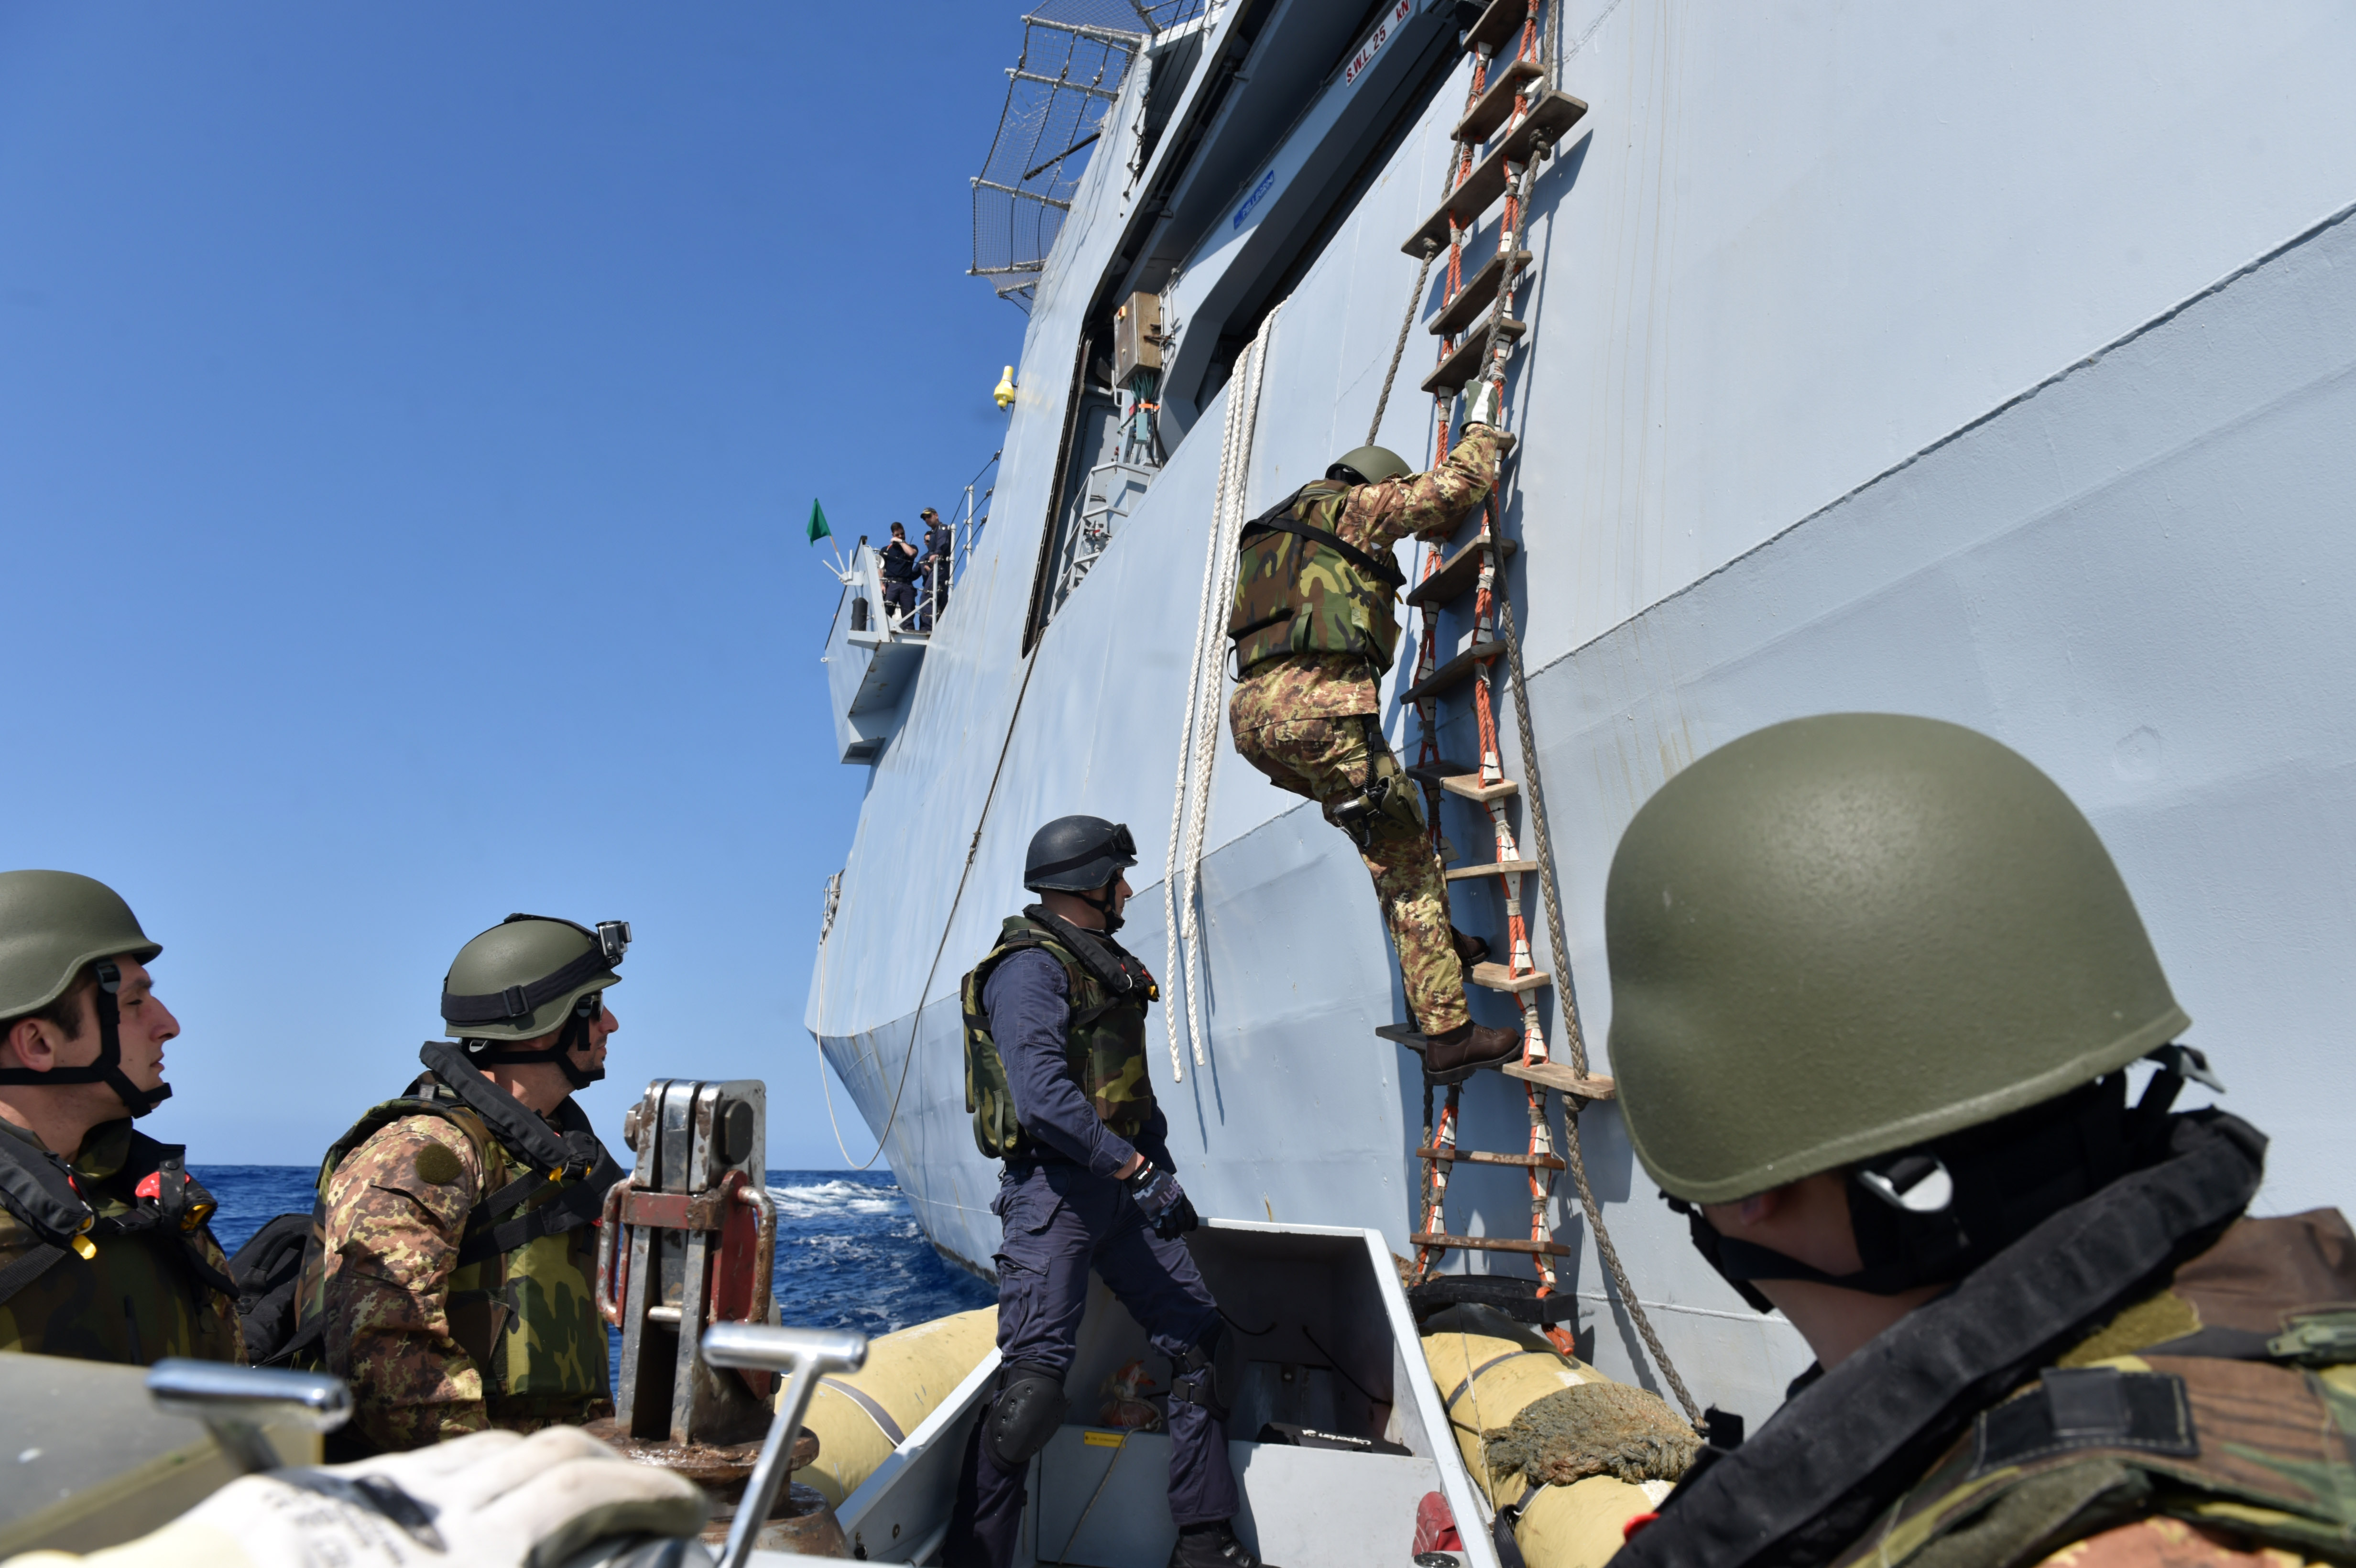 160525-N-XT273-191 MEDITERRANEAN SEA (May 25, 2016) Italian sailors and marines participate in a mock visit, board, search, and seizure boarding drill aboard the Royal Moroccan ship P611 during exercise Phoenix Express 2016, May 25. Phoenix Express is a U.S. Africa Command-sponsored multinational maritime exercise designed to increase maritime safety and security in the Mediterranean. (U.S. Navy photo by Mass Communication Specialist 2nd Class Justin Stumberg/Released)